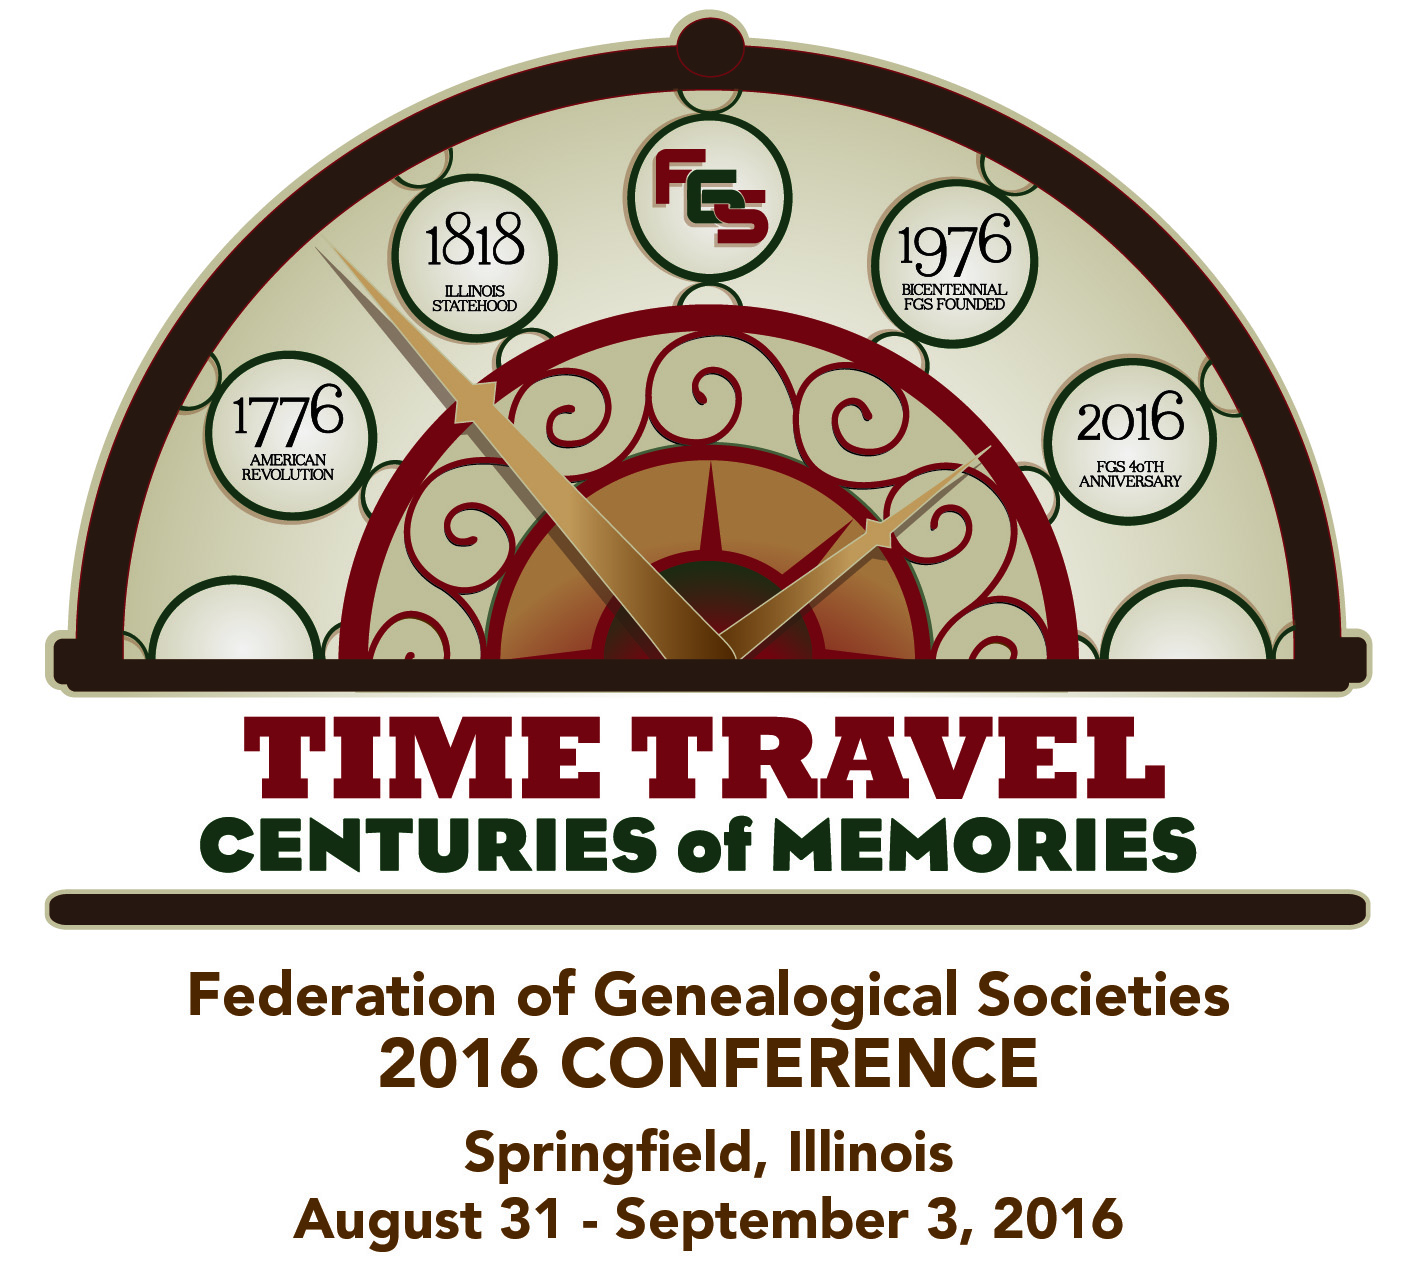 FGS Conference 2016: TIME TRAVEL Centuries of Memories